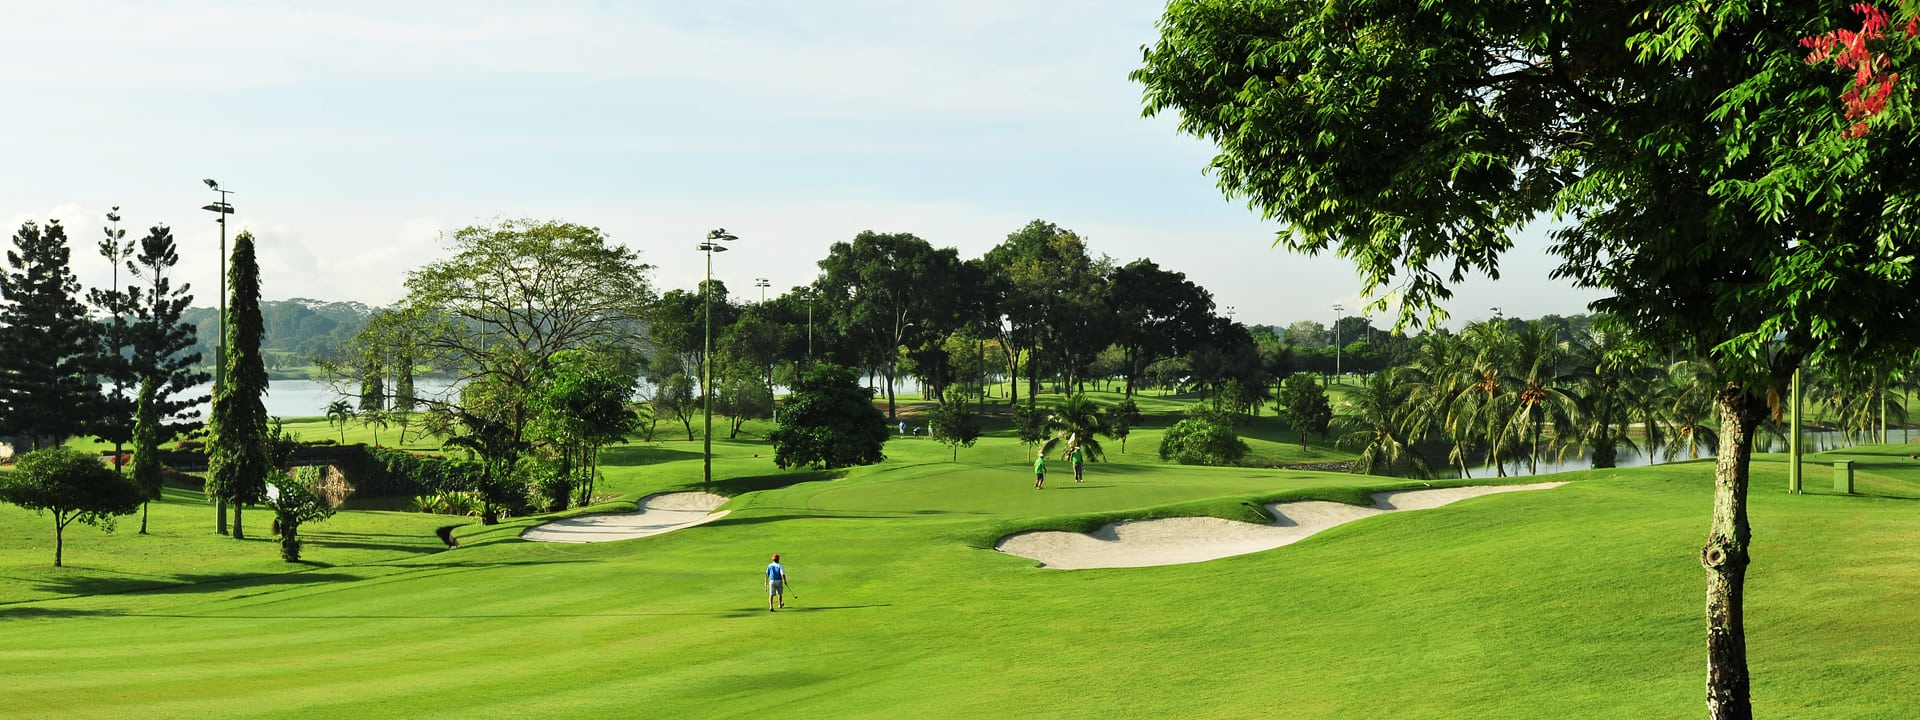 Golf course at the Orchid Country Club